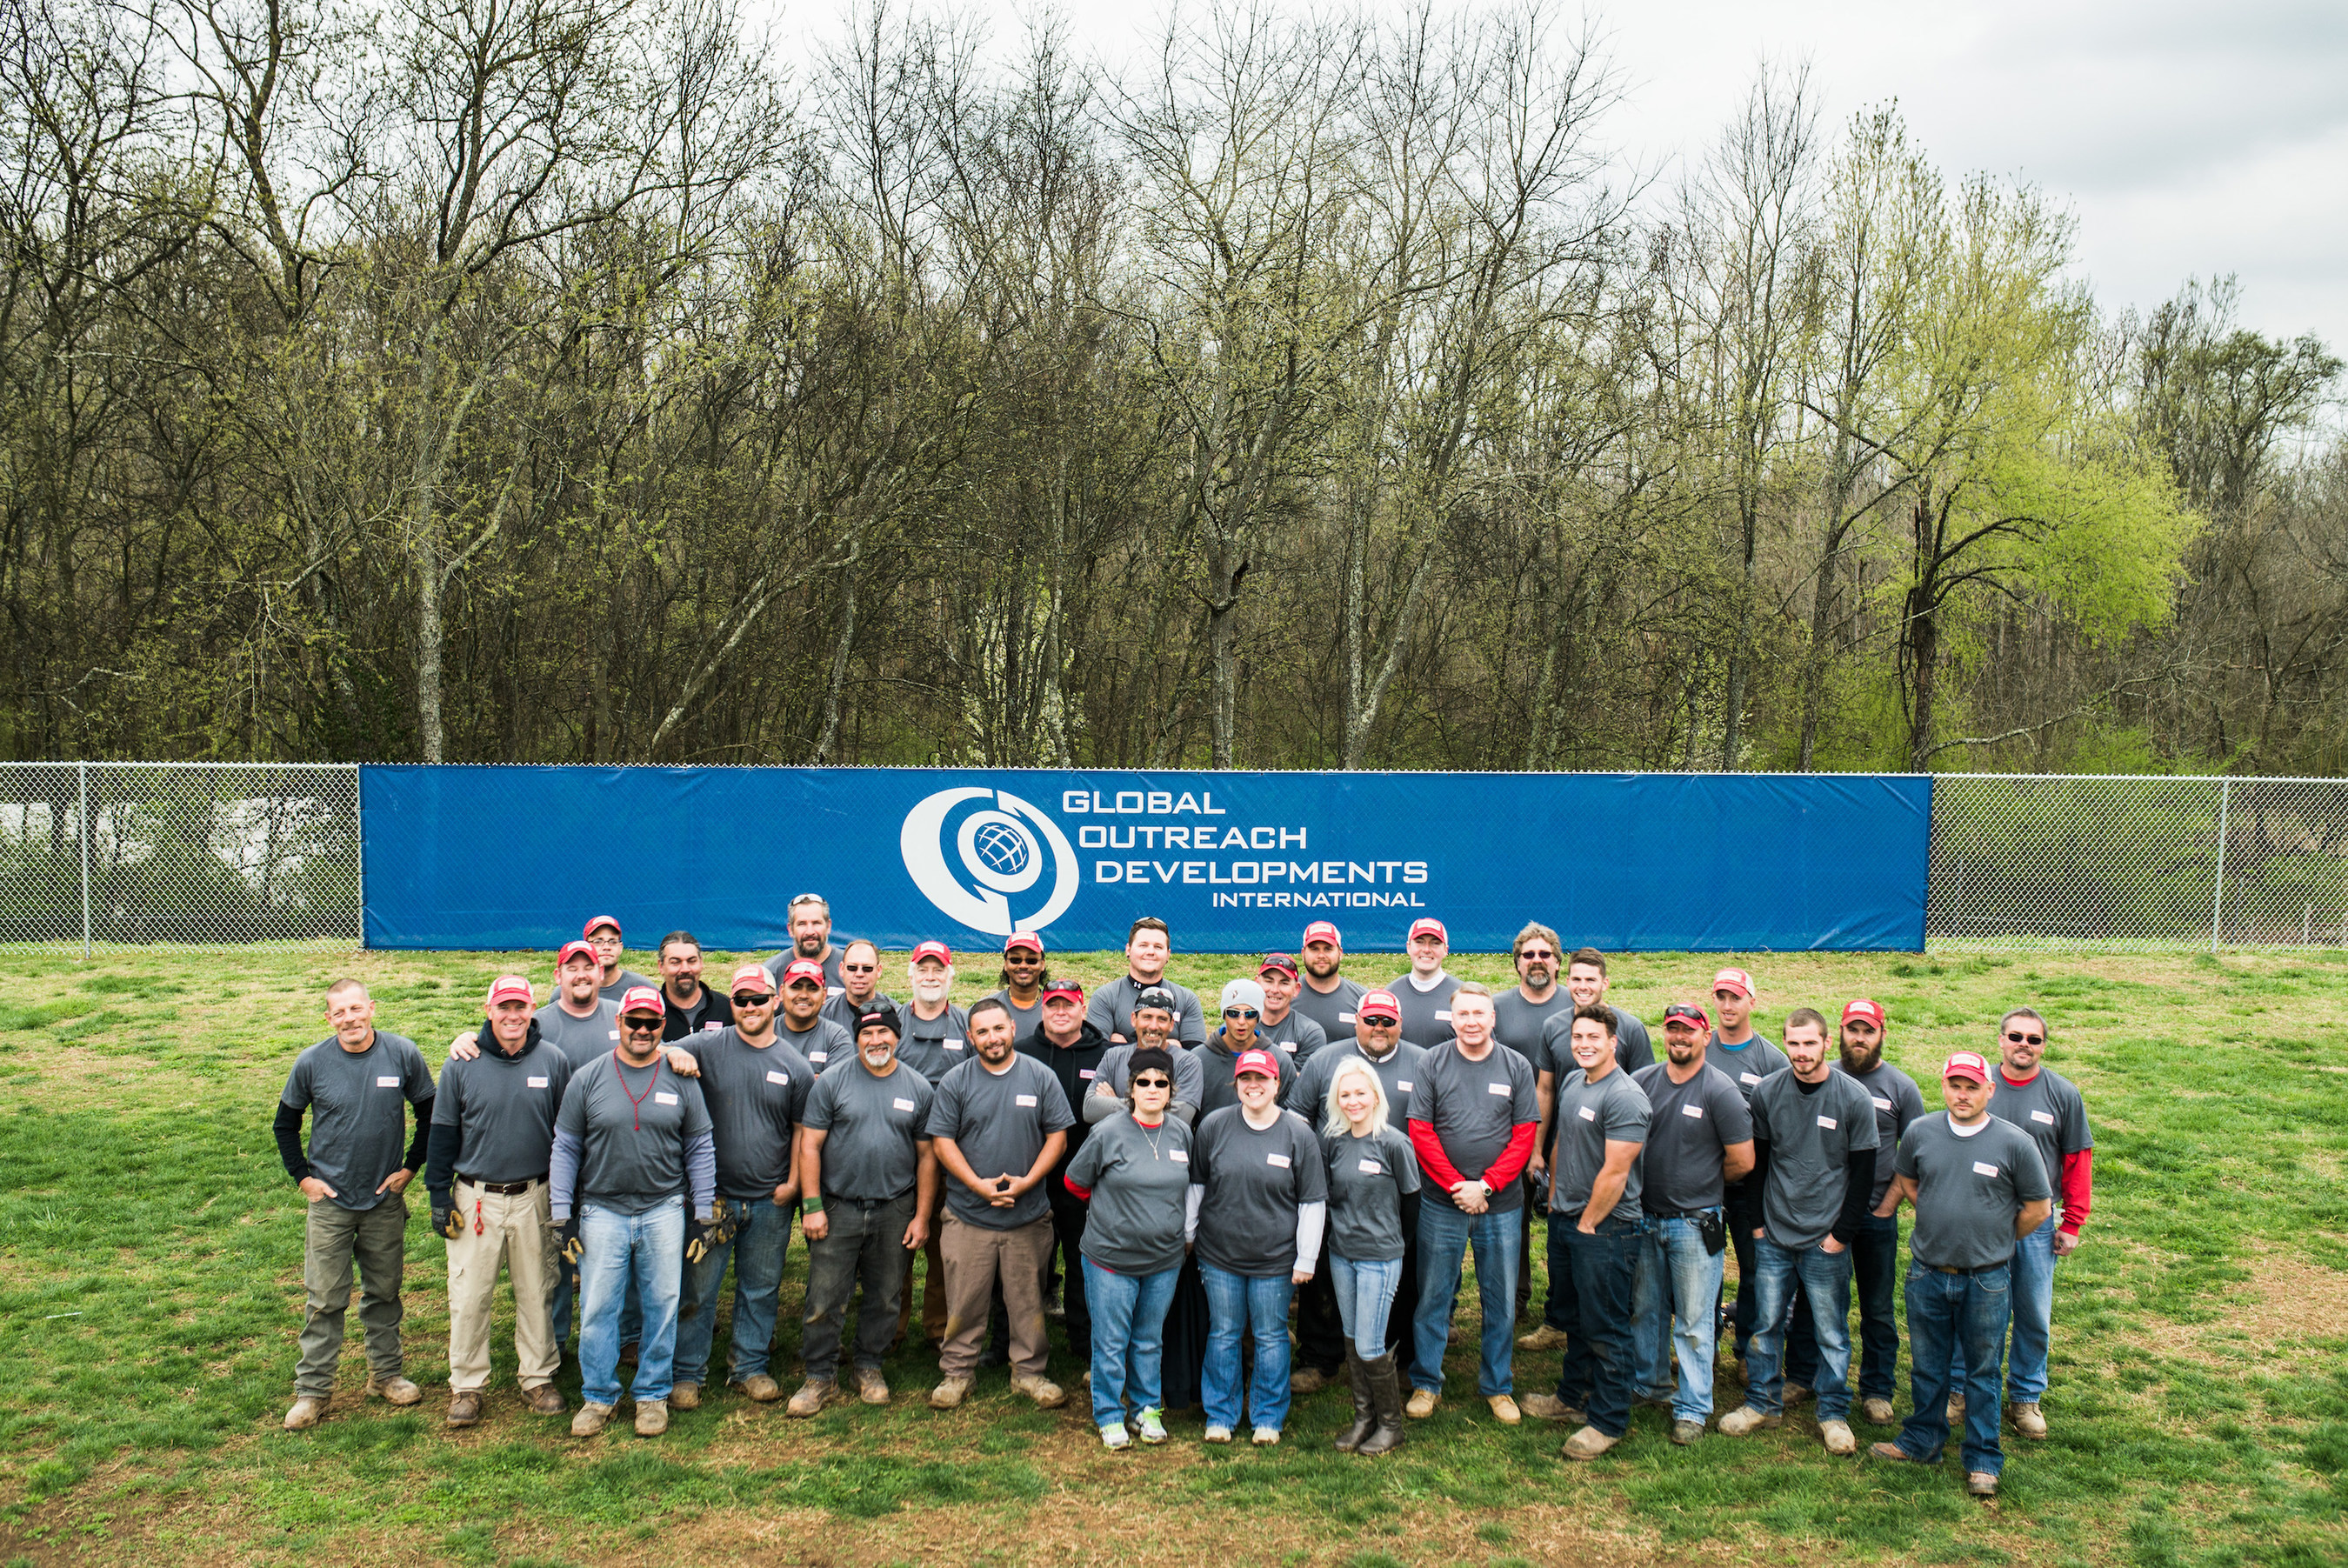 Rio Grande Fence Co. of Nashville staff photo after completing 2016 Good Friday Service Project in Old Hickory, Tenn. at G.O.D. Int'l